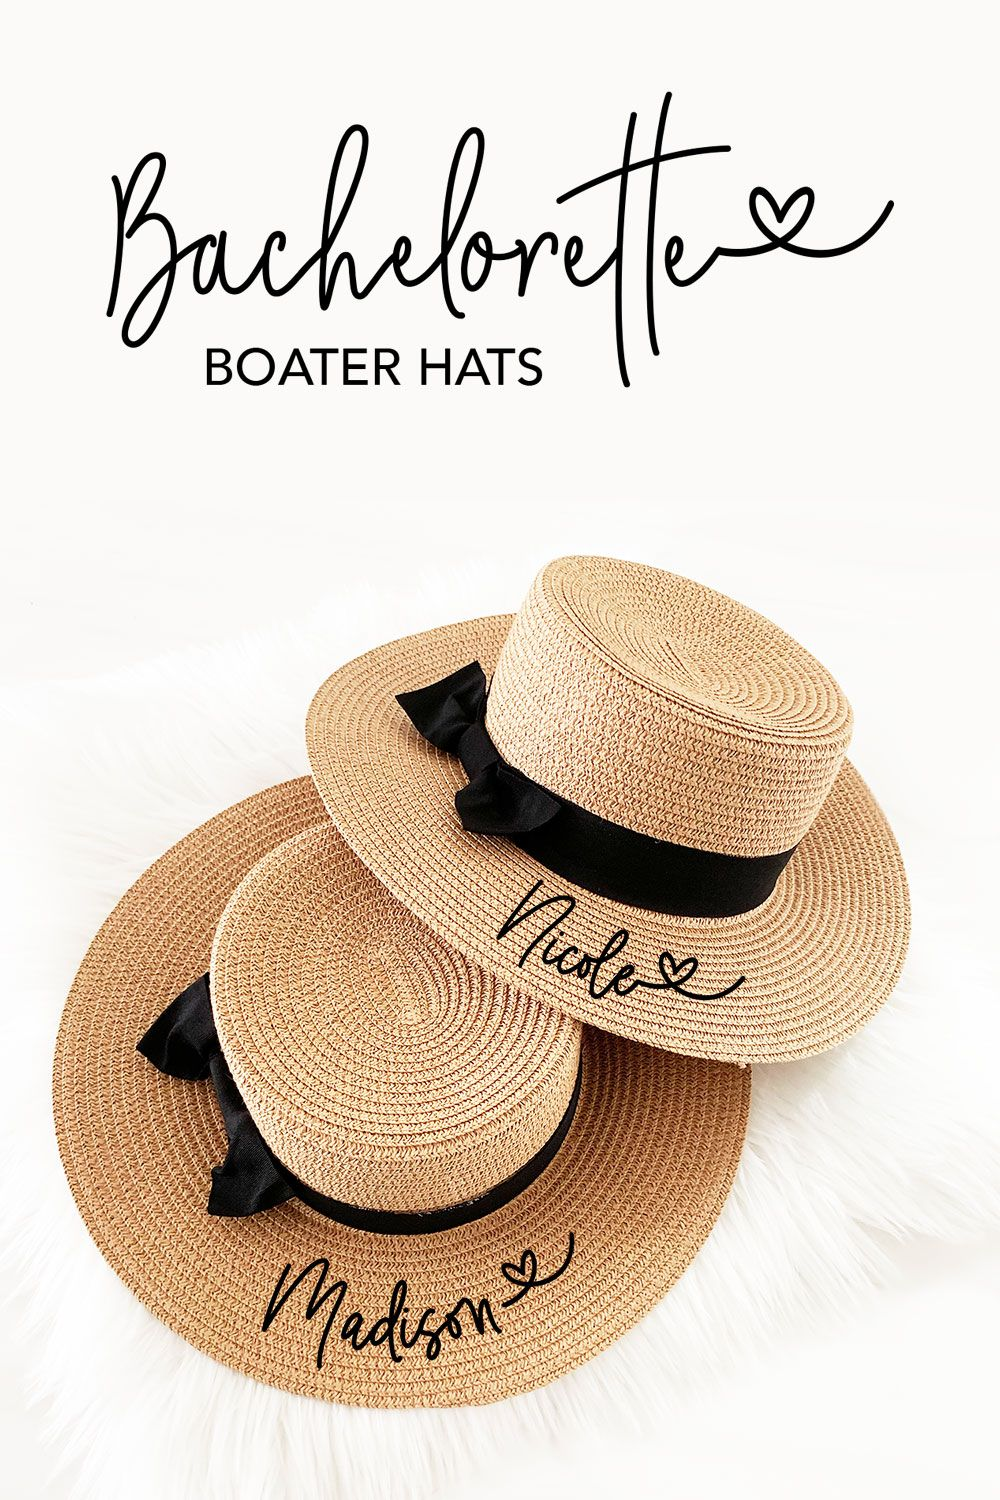 Personalized Boater Hats Beach Bachelorette Party Outfit Bachelorette Party Hat Bachelorette Party Planning